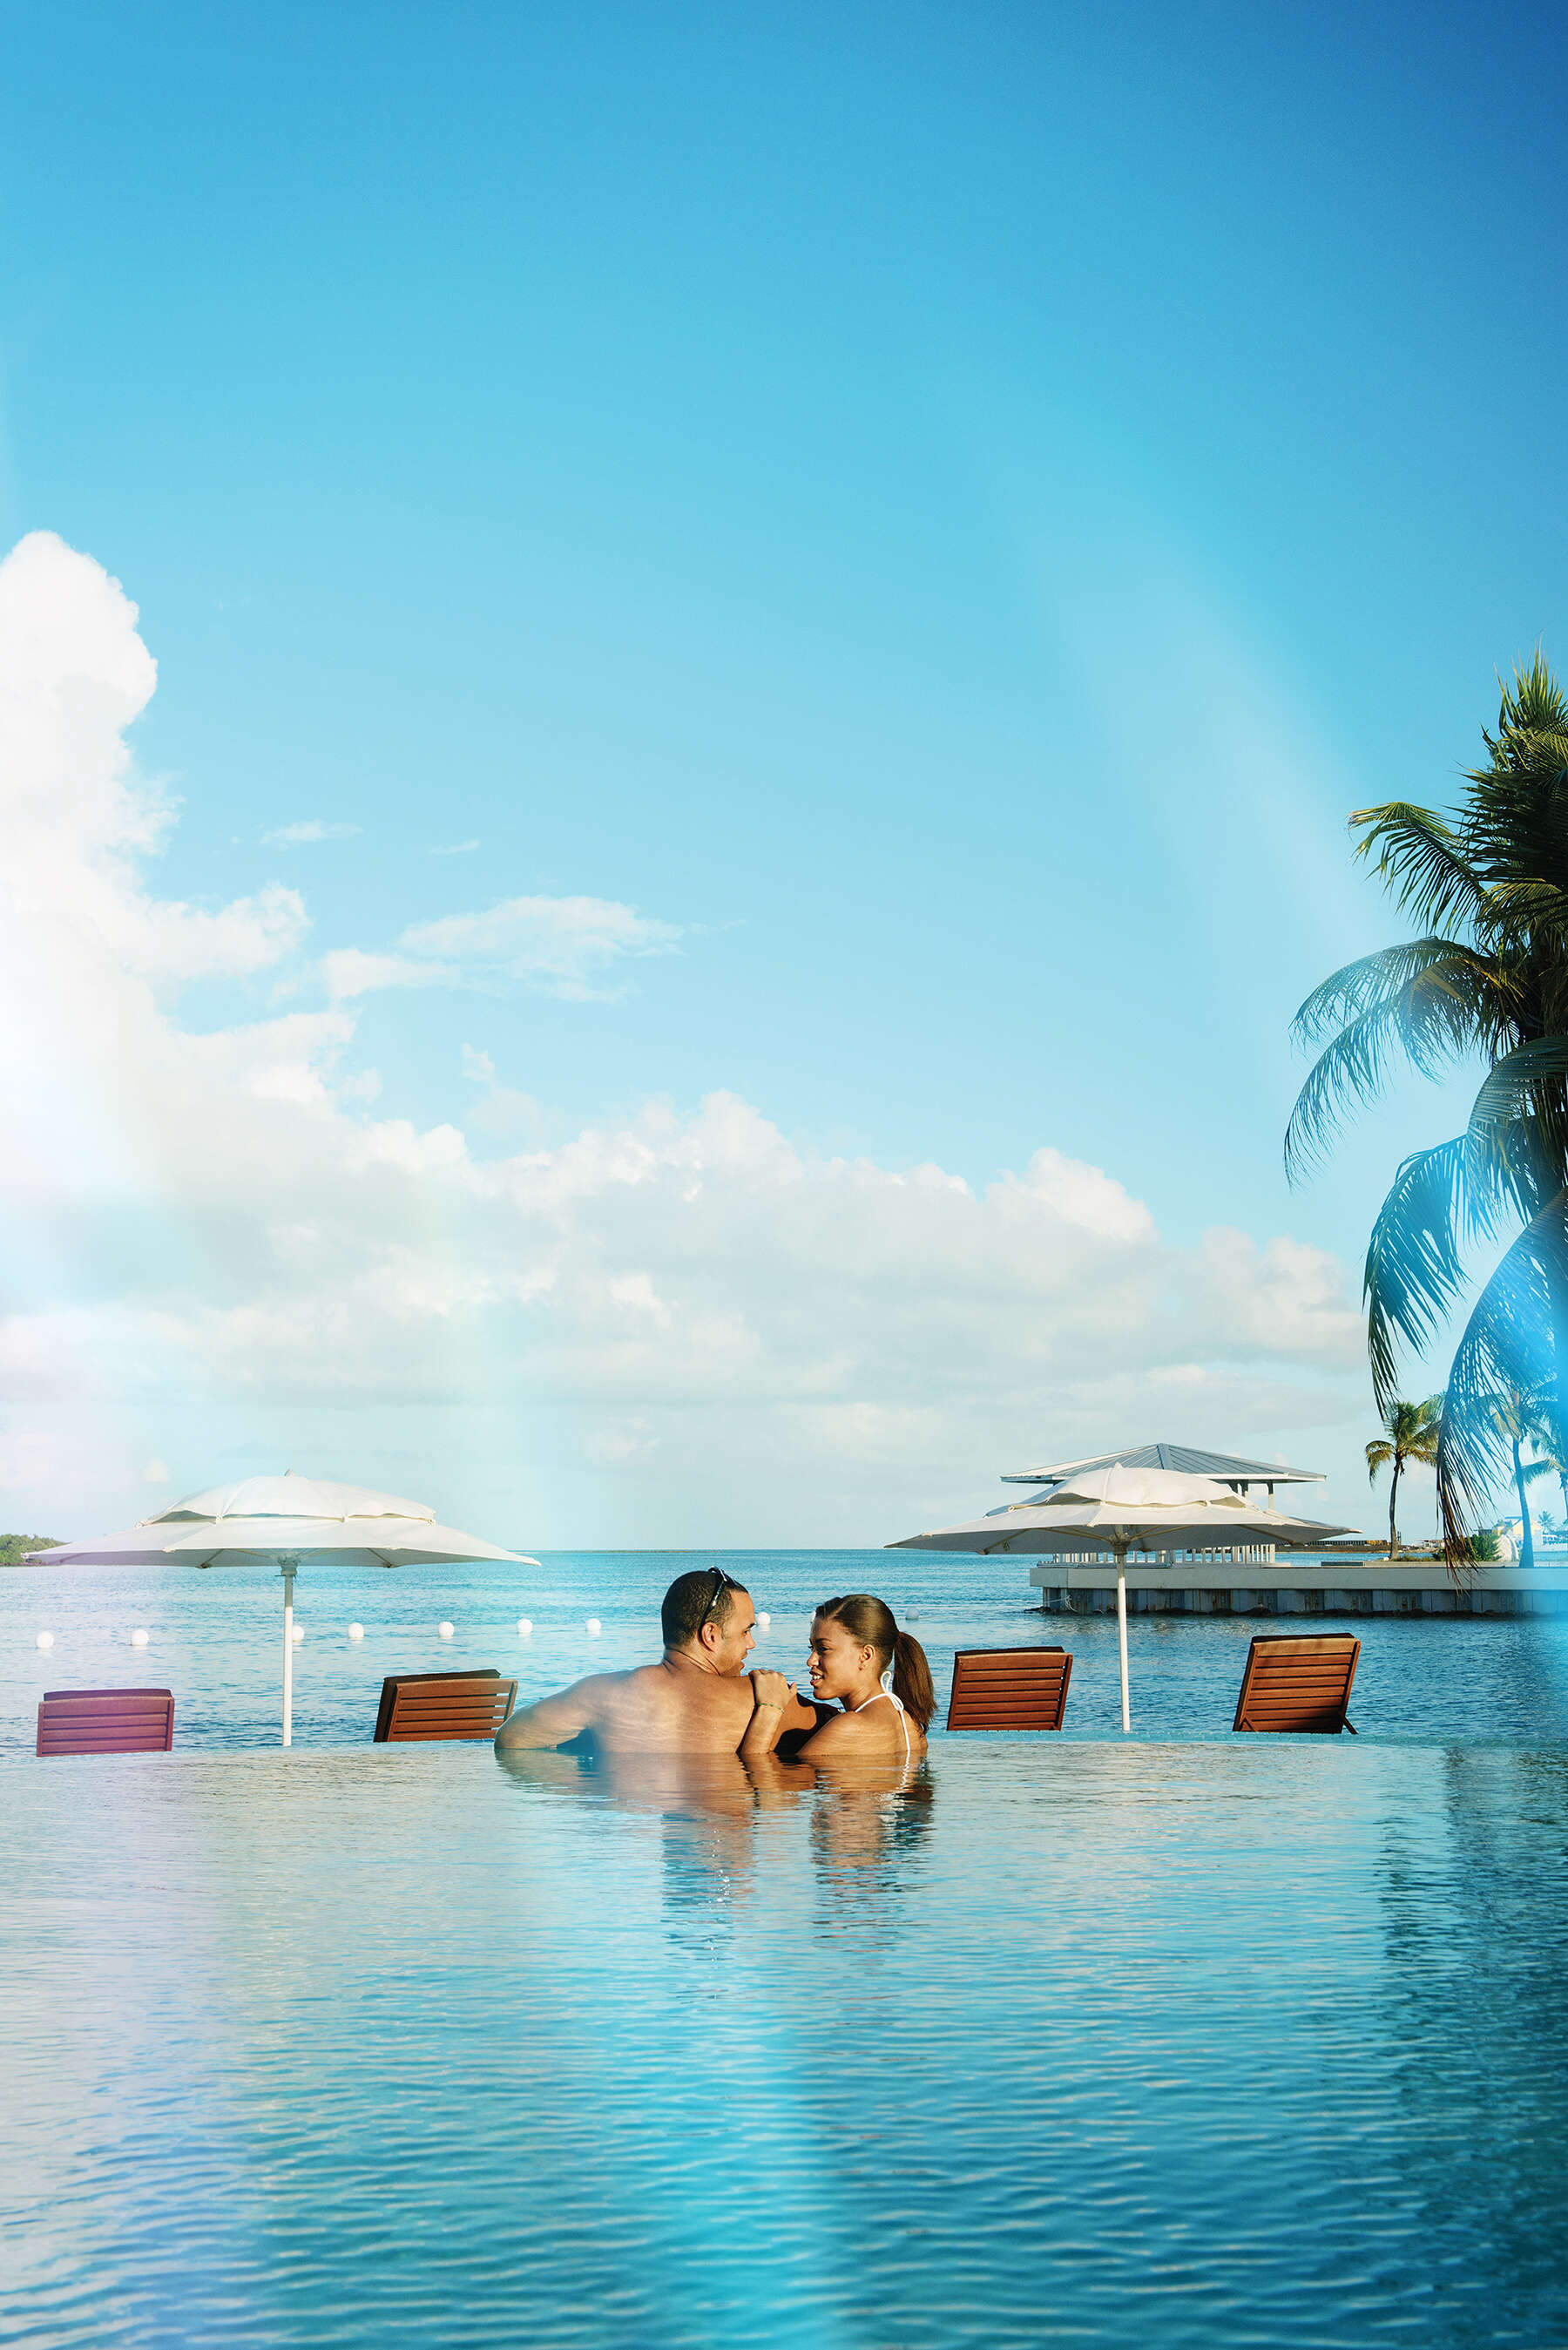 Transat - Free transfers, access to airport VIP lounges and more!